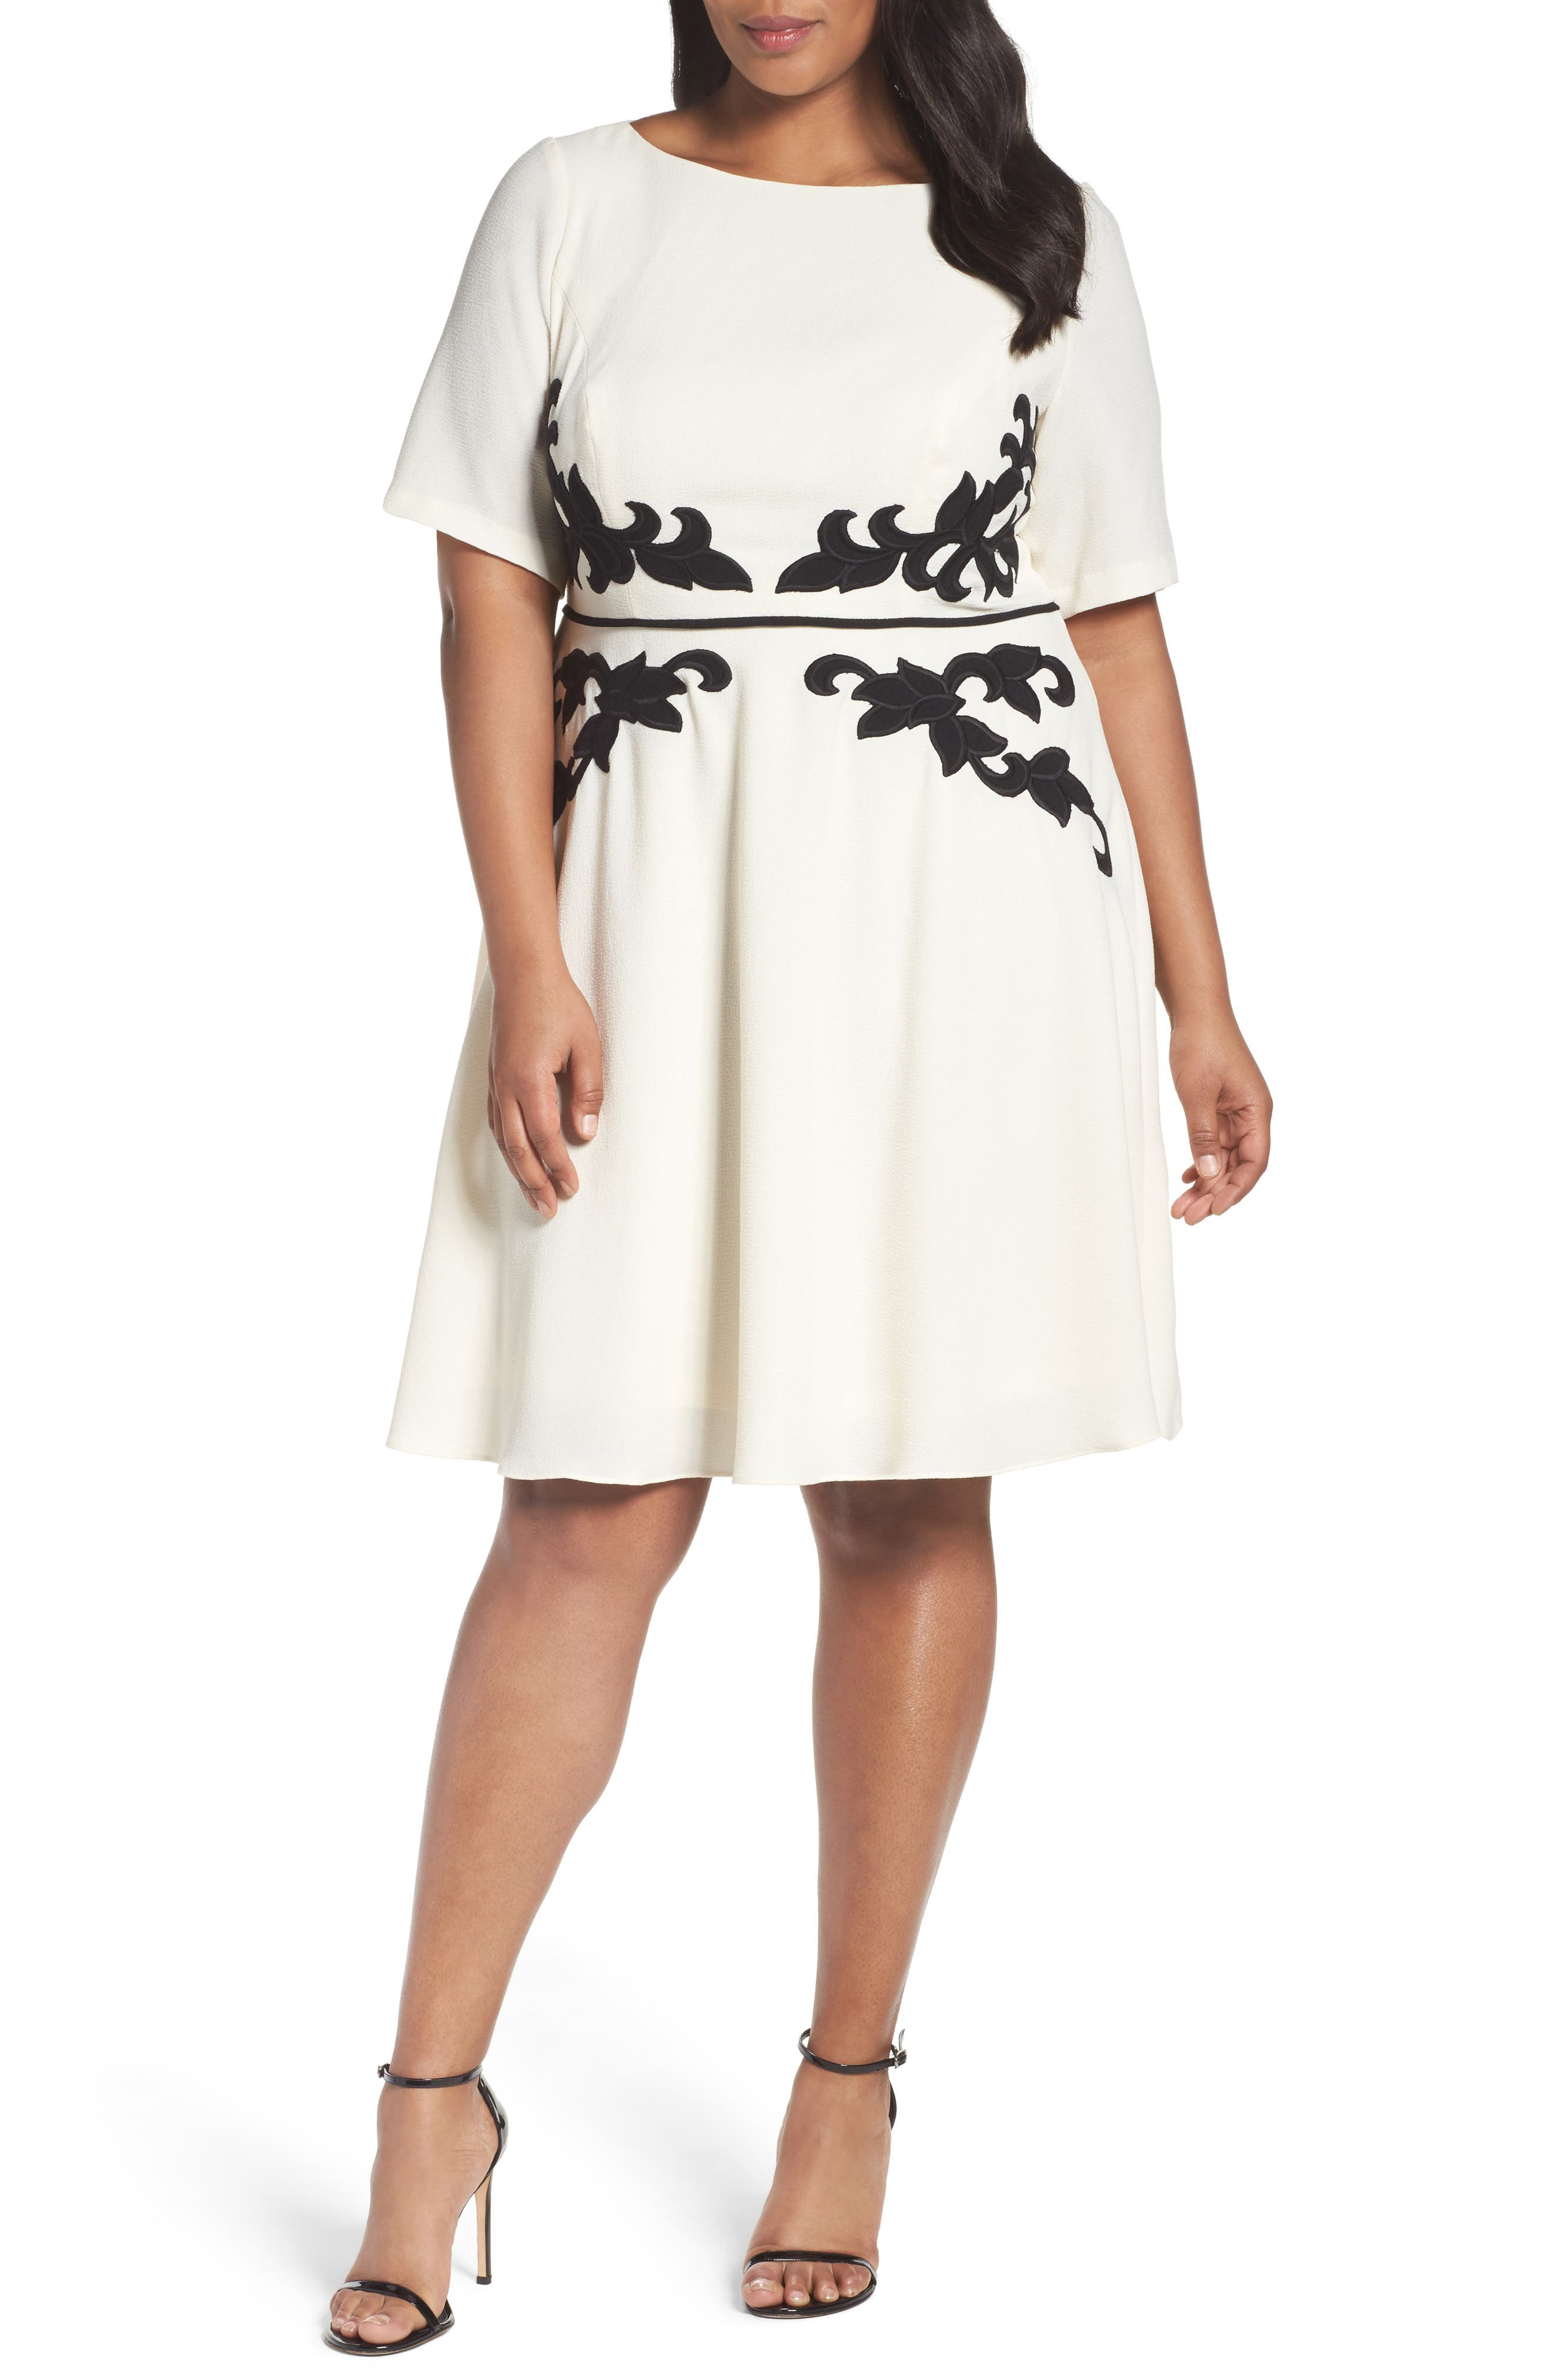 Adrianna Papell Appliqué Fit & Flare Dress (Plus Size)